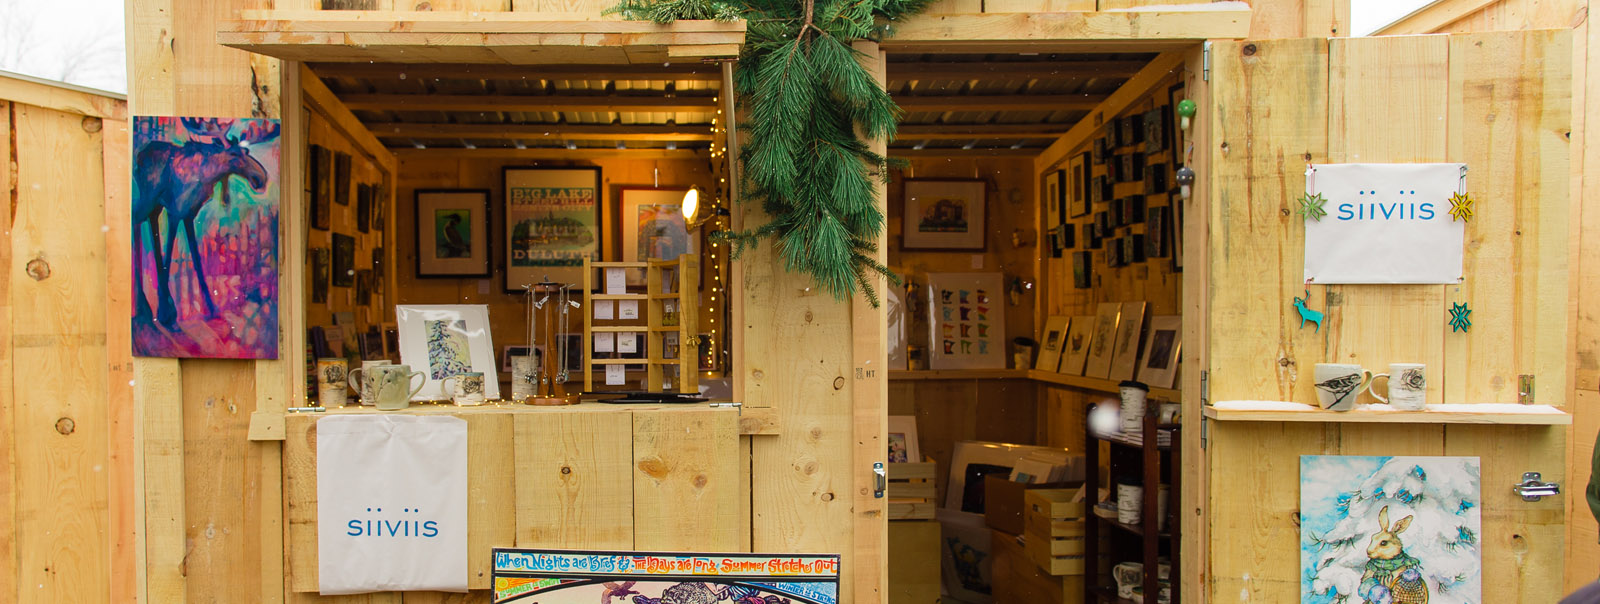 Shop local this season at area vendors selling from beautiful wood cabins made by Knutson Custom Construction